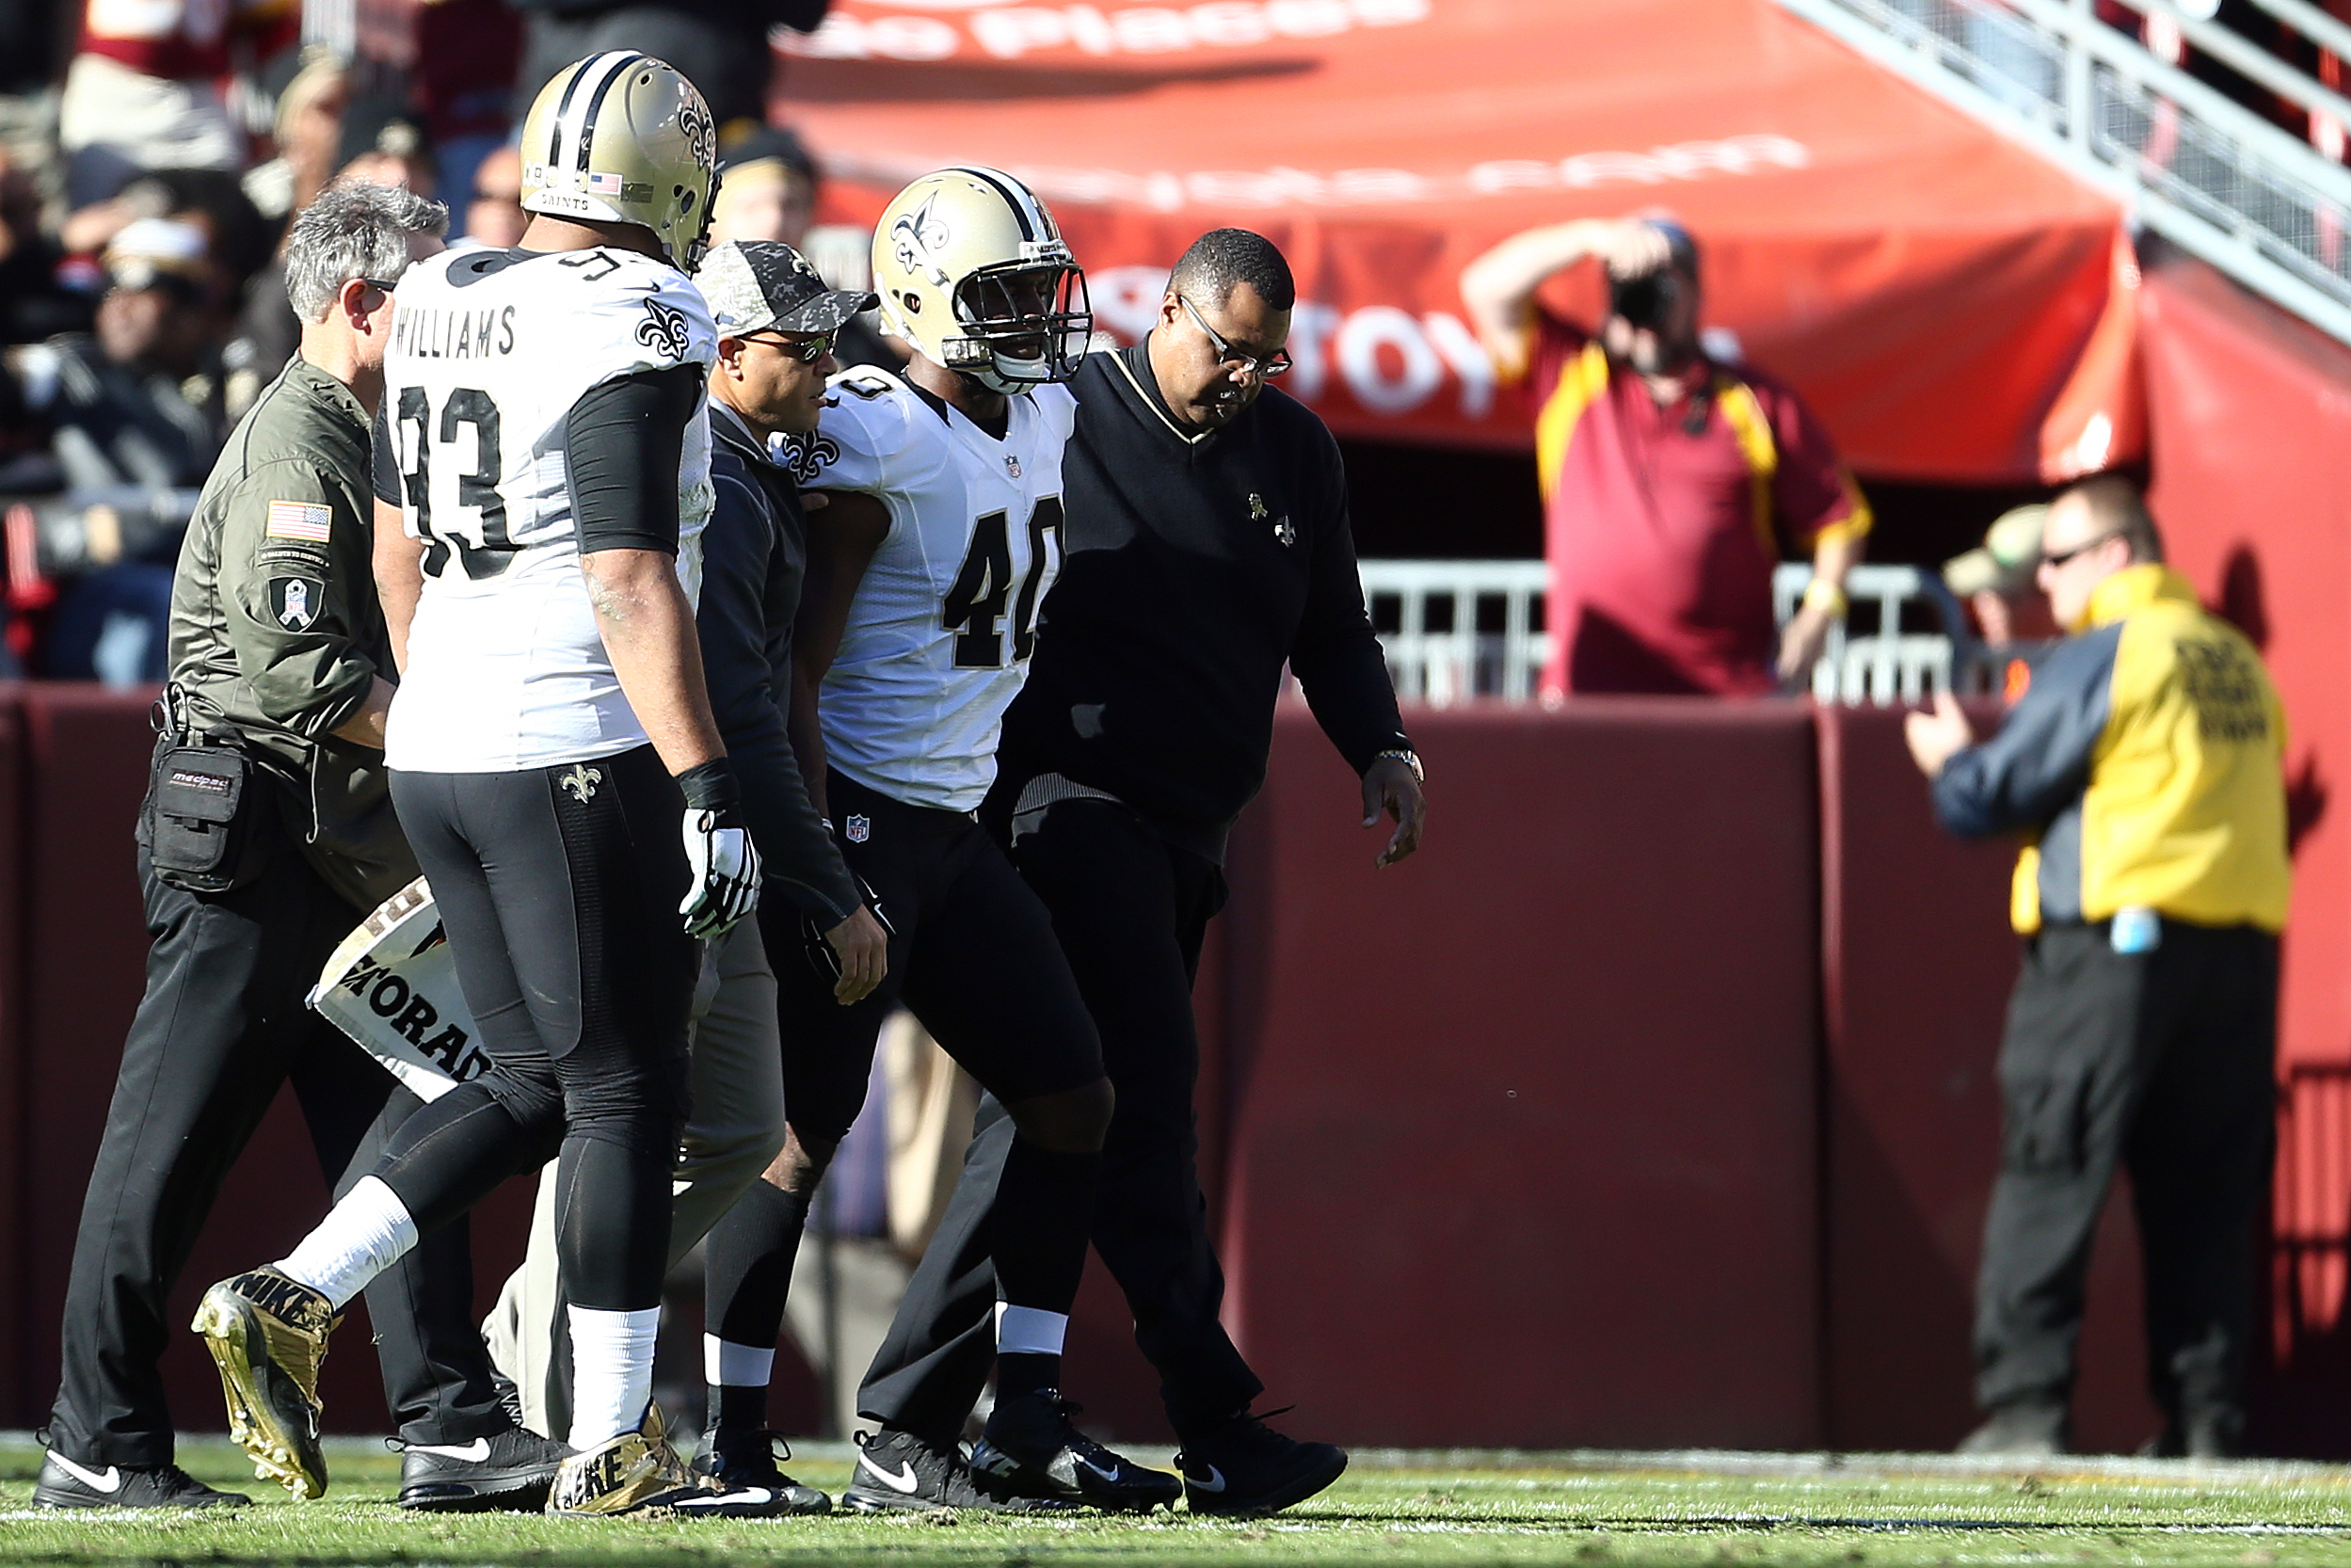 Injuries in the NFL and New Orleans are epidemic